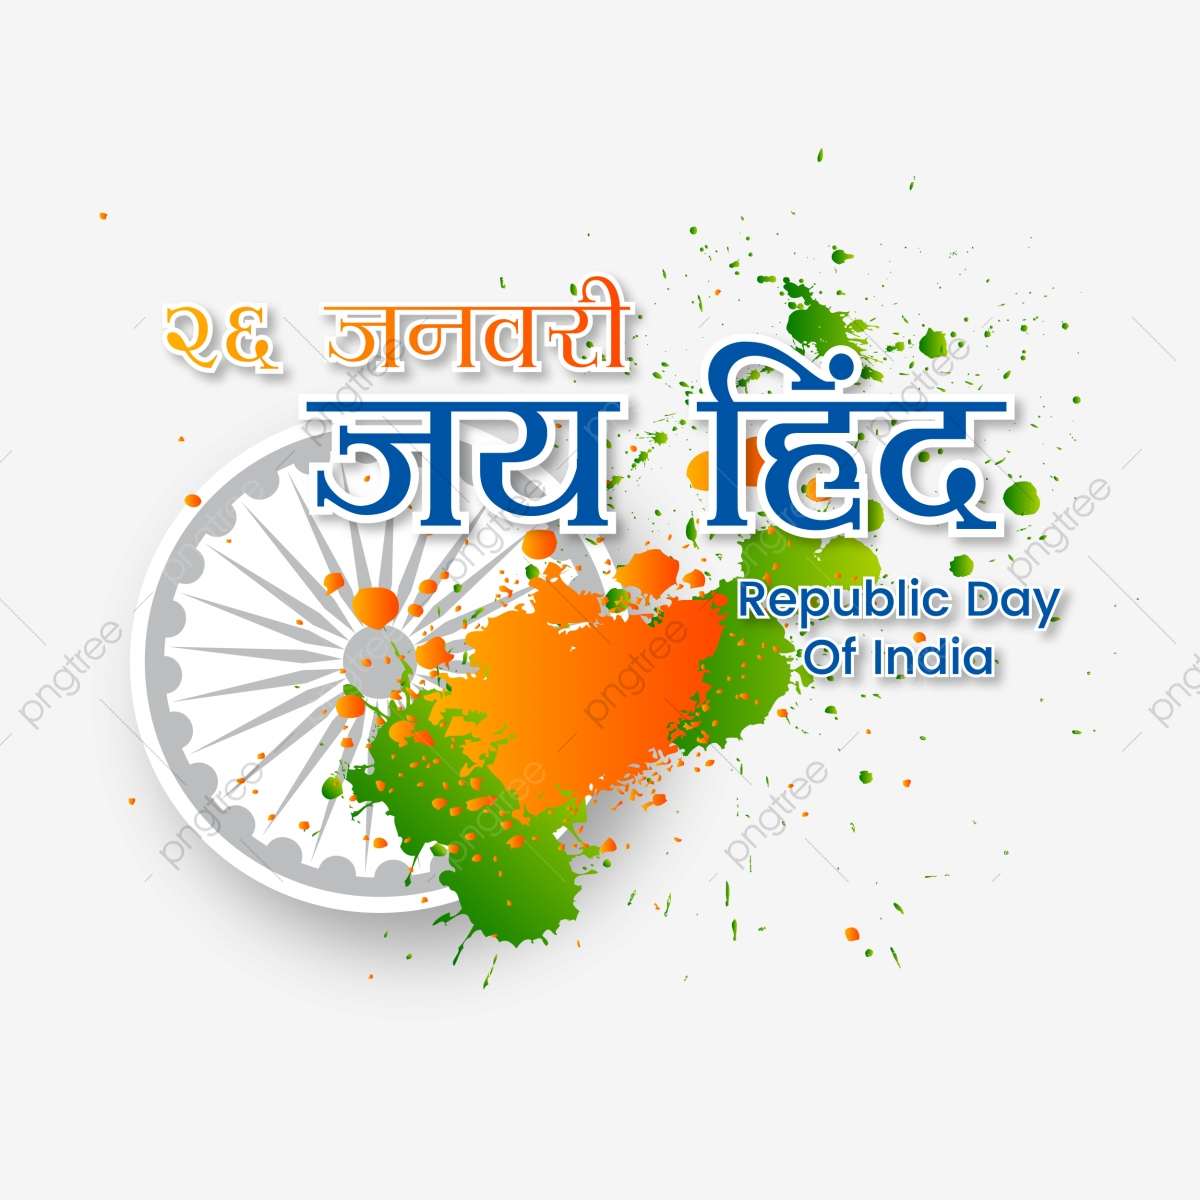 Jai Hind Calligraphy In Hindi 26 January Republic Day Of India.